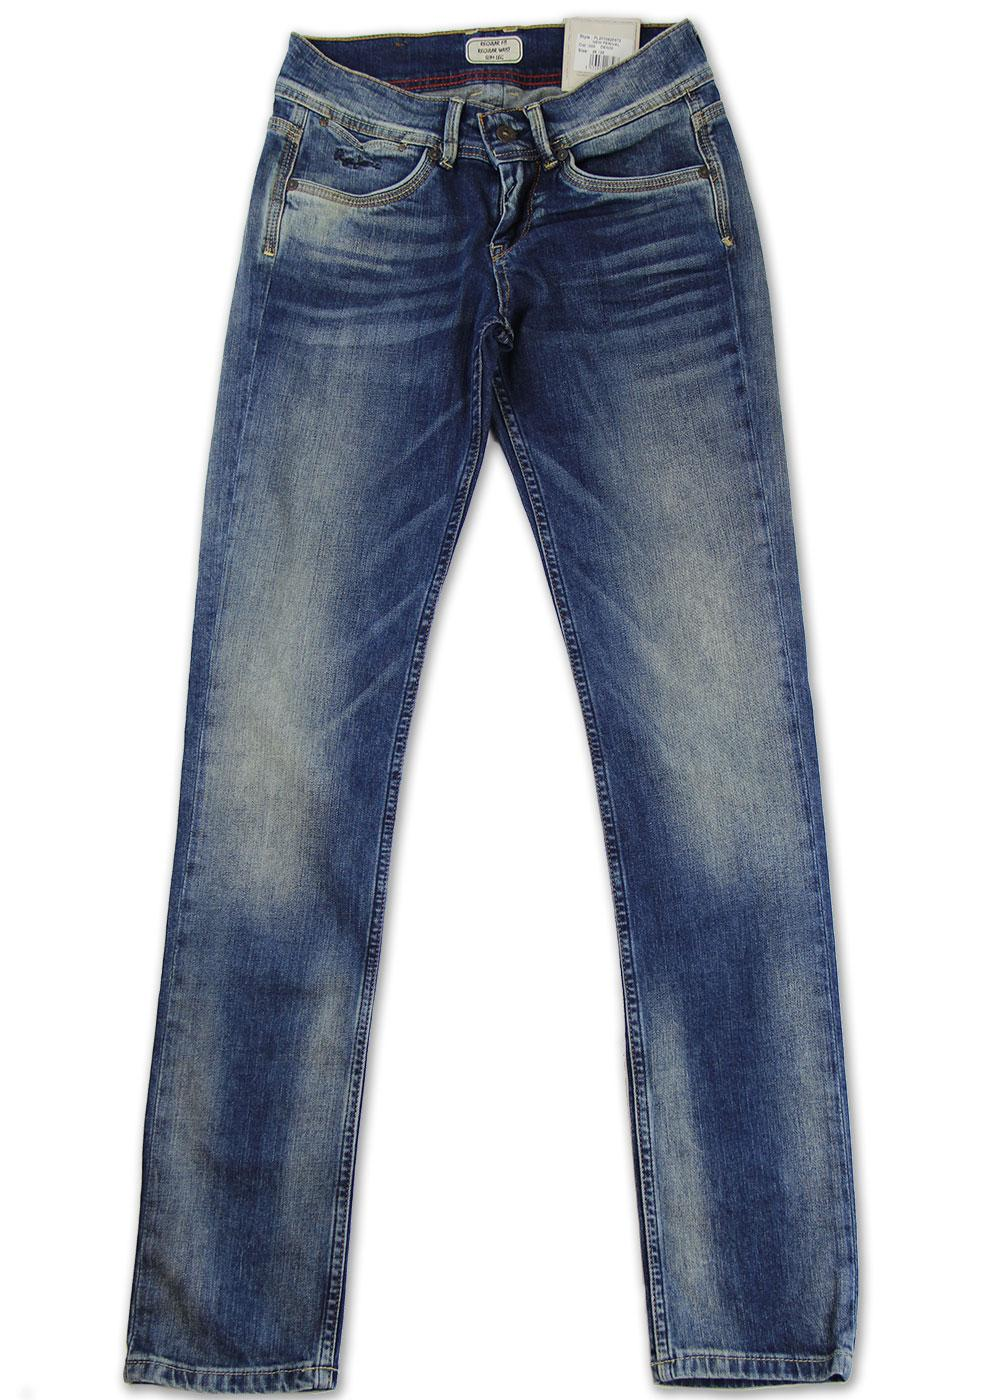 New Perival Pepe Retro Indie Distressed Slim Jeans